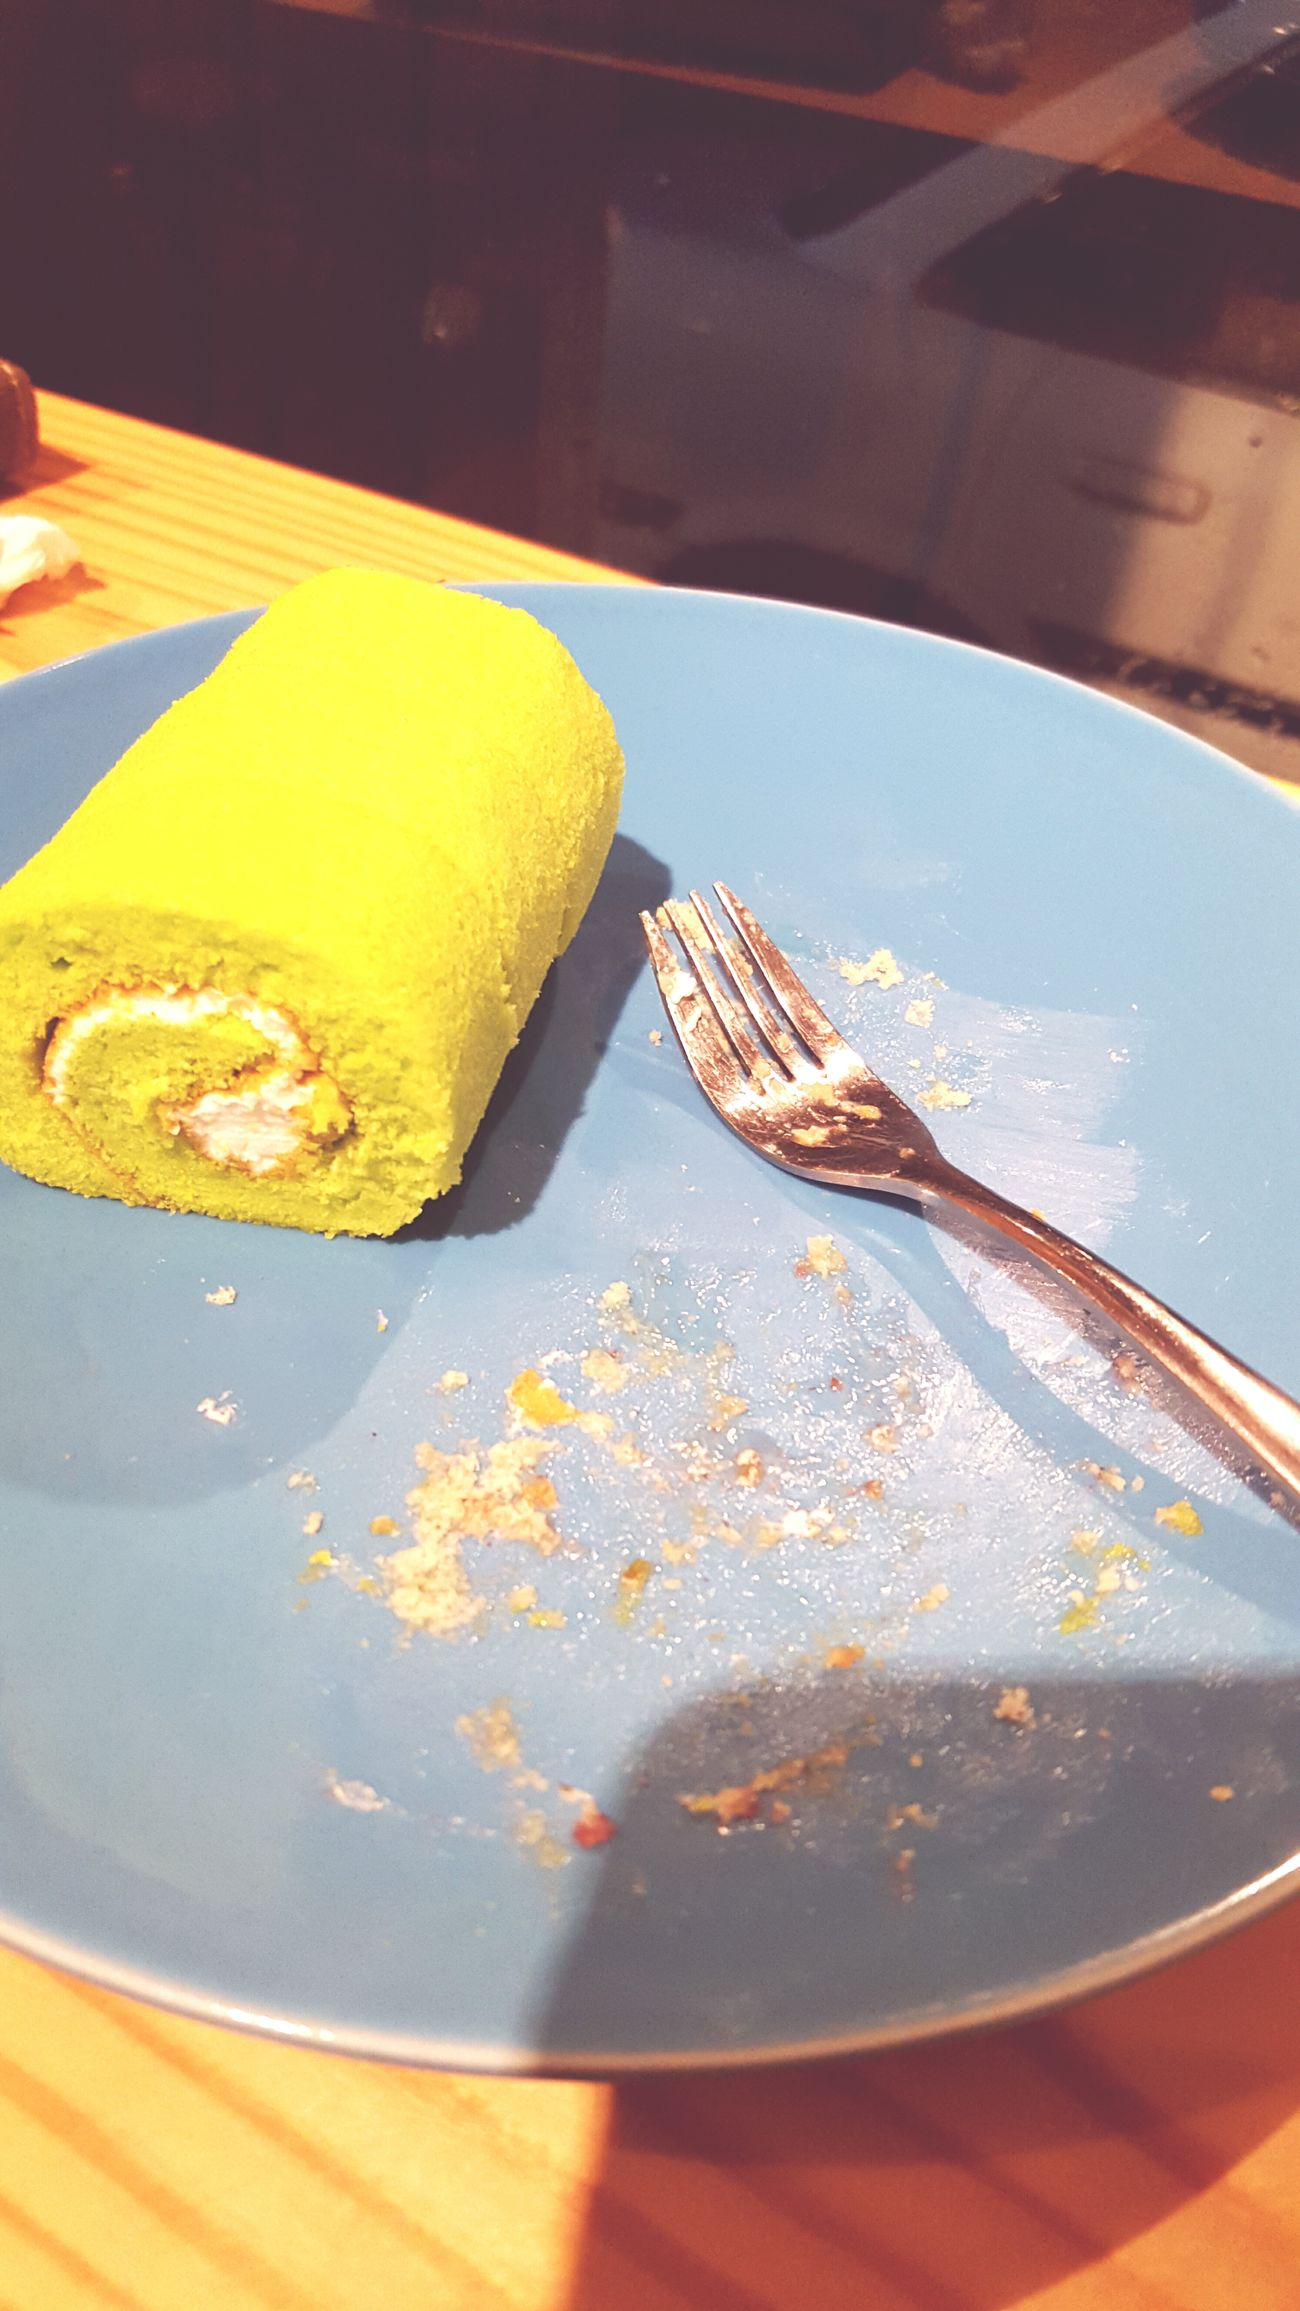 Sweet Tooth Jam Roll Sweets Pandan Dessert Cakeroll Homedupain Khmervintage Phnompenh Only In Cambodia